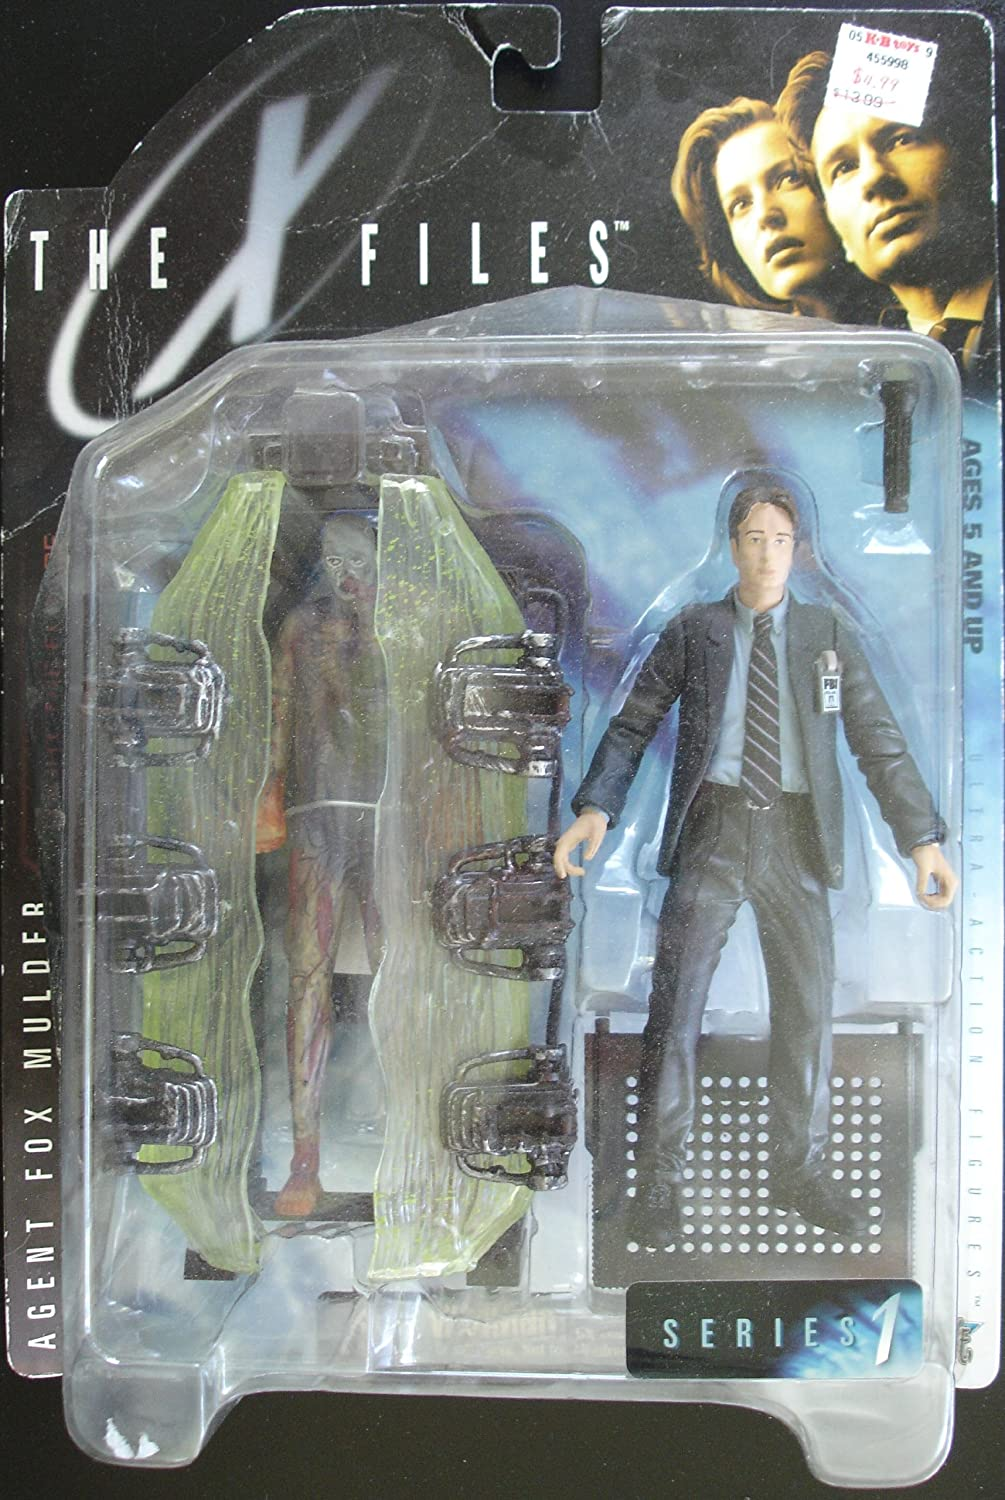 X FILES AGENT FOX MULDER SERIES 1 WITH MUMMY AND CRYPT CHINA